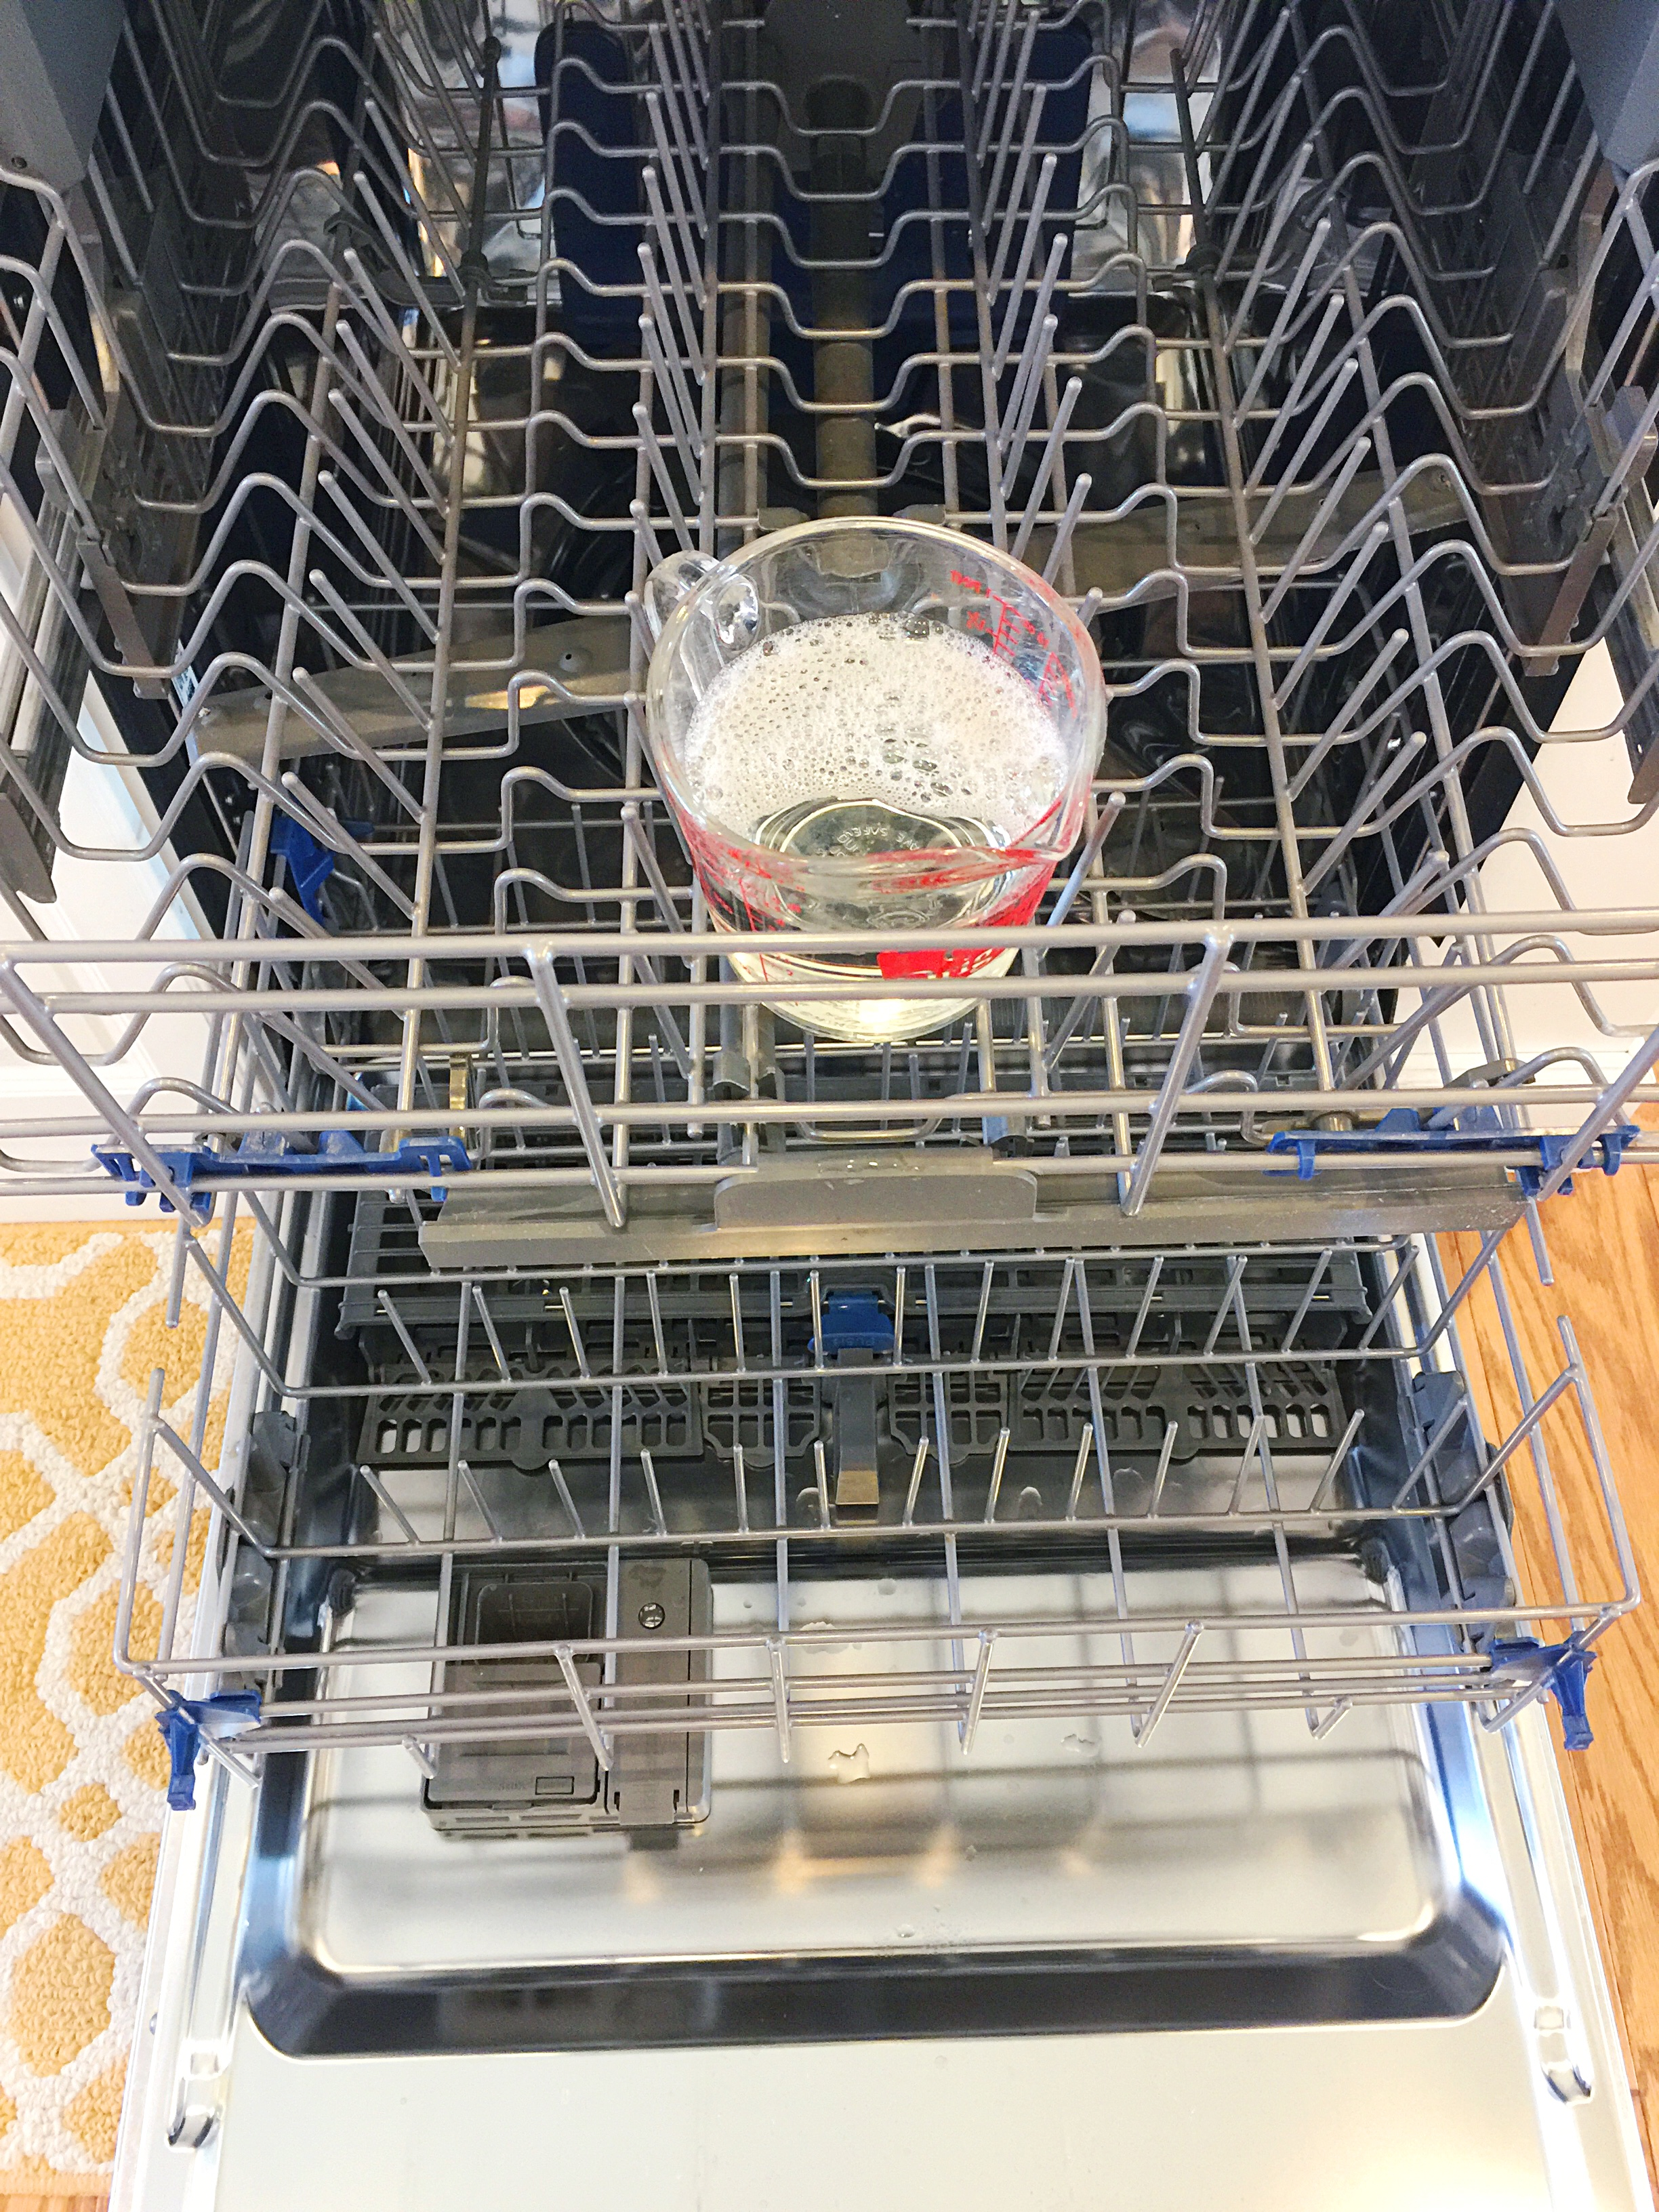 Non-Toxic Cleaning: Dishwasher